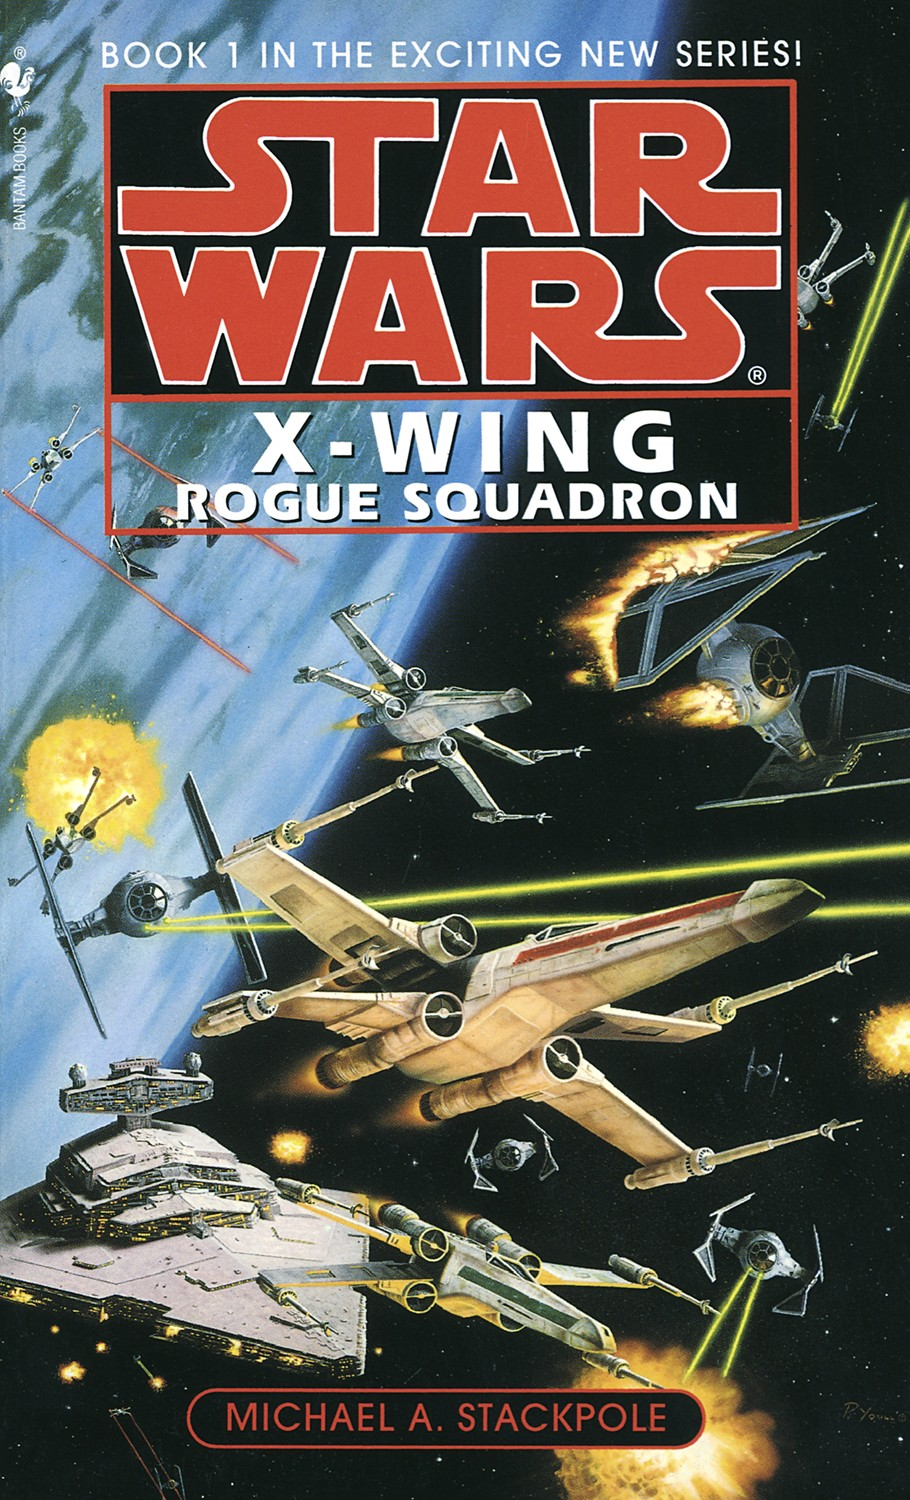 X-Wing: Rogue Squadron - Wookieepedia, the Star Wars Wiki